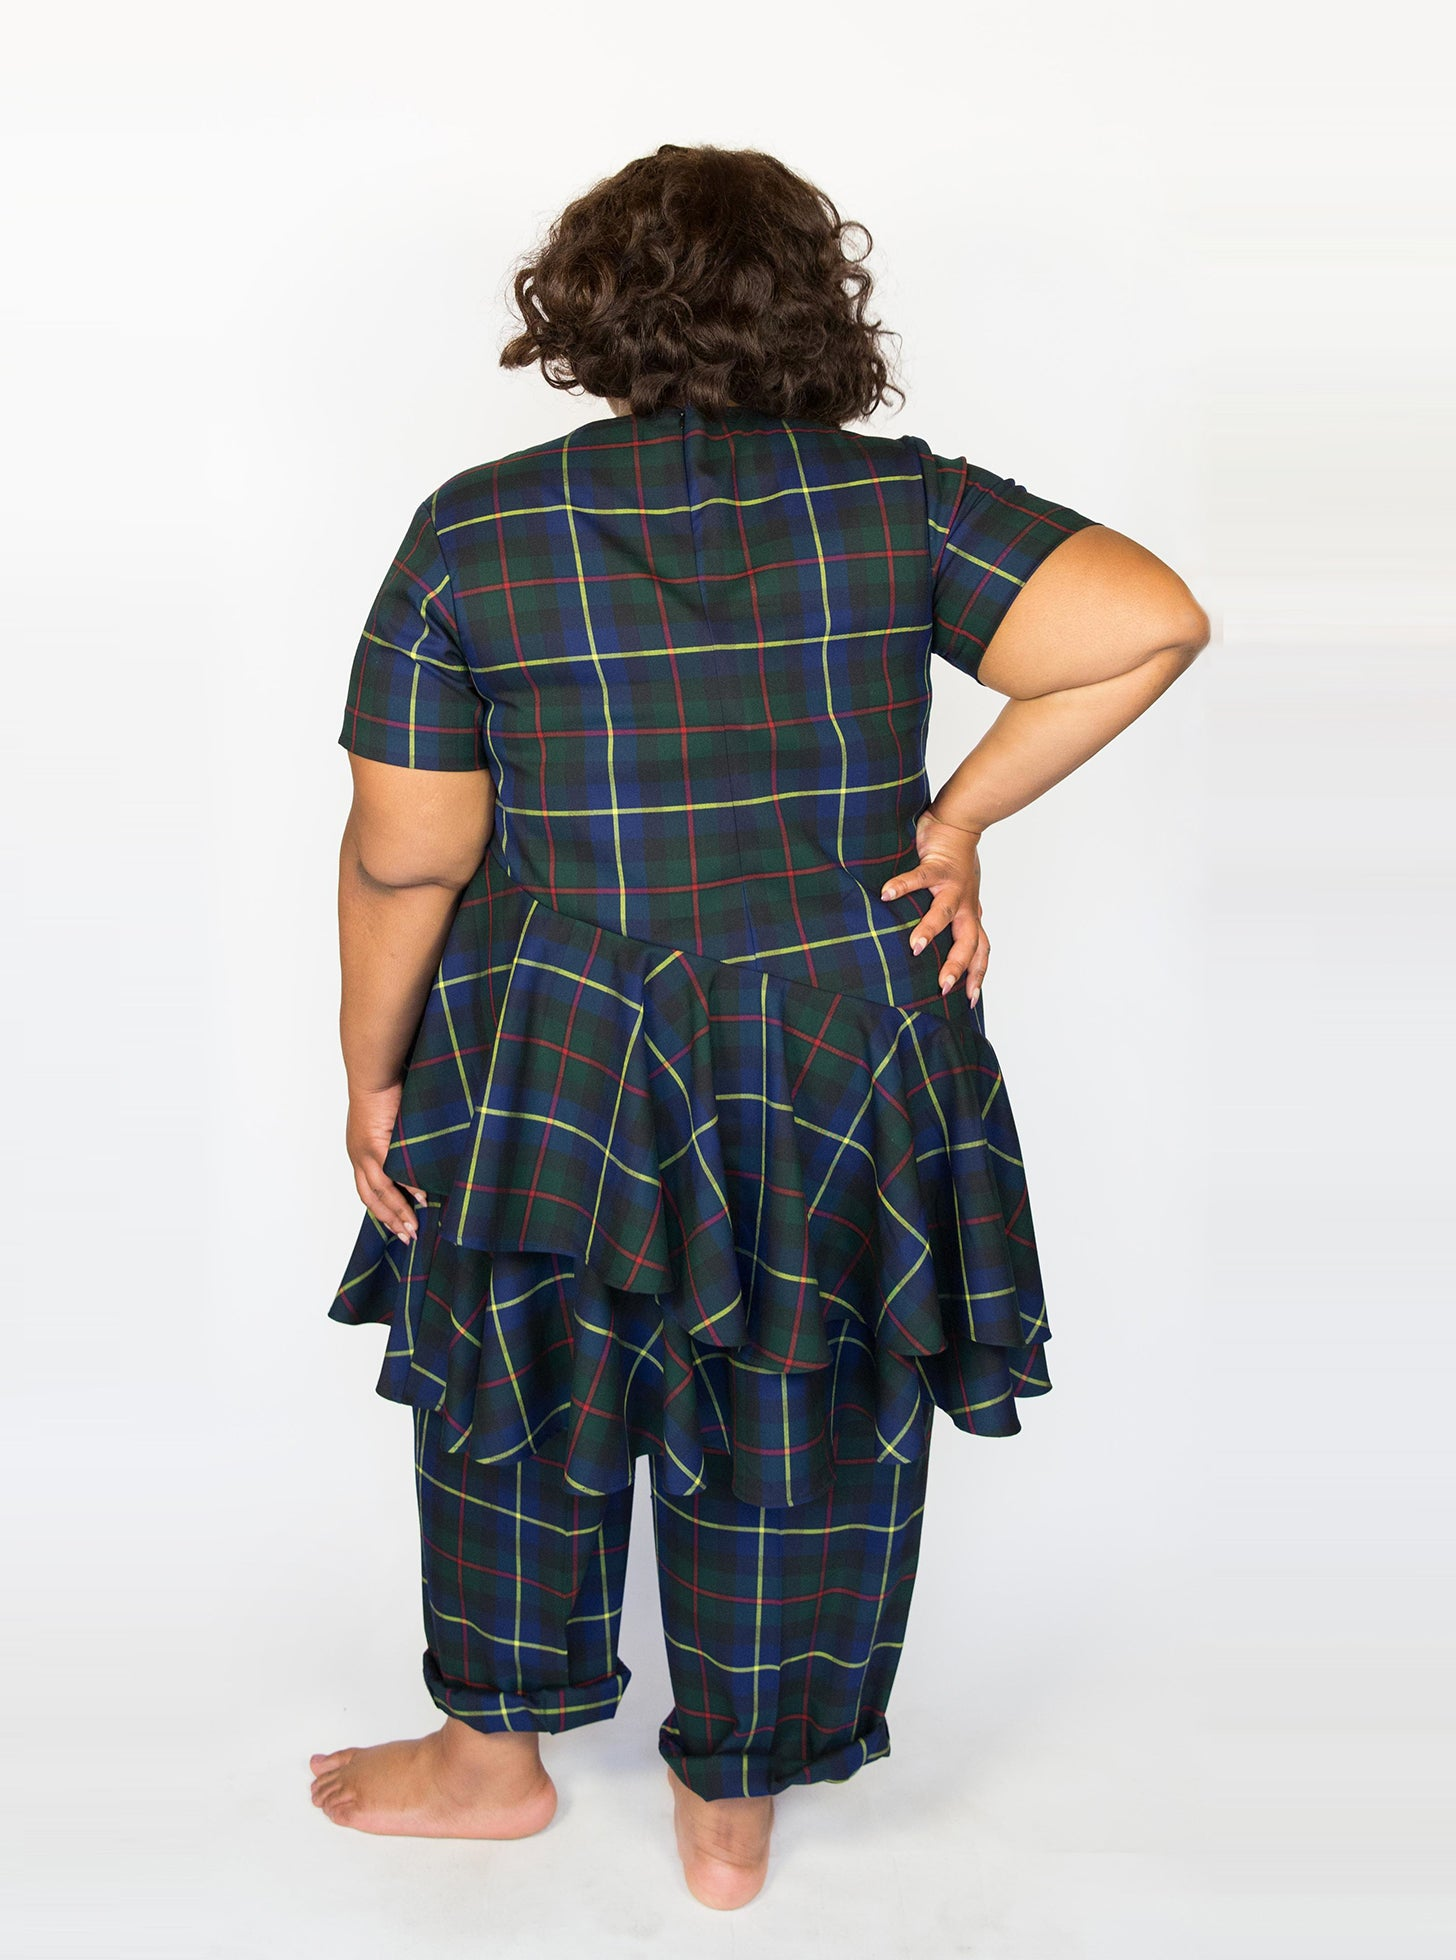 Plaid Topsy Turvy Dress